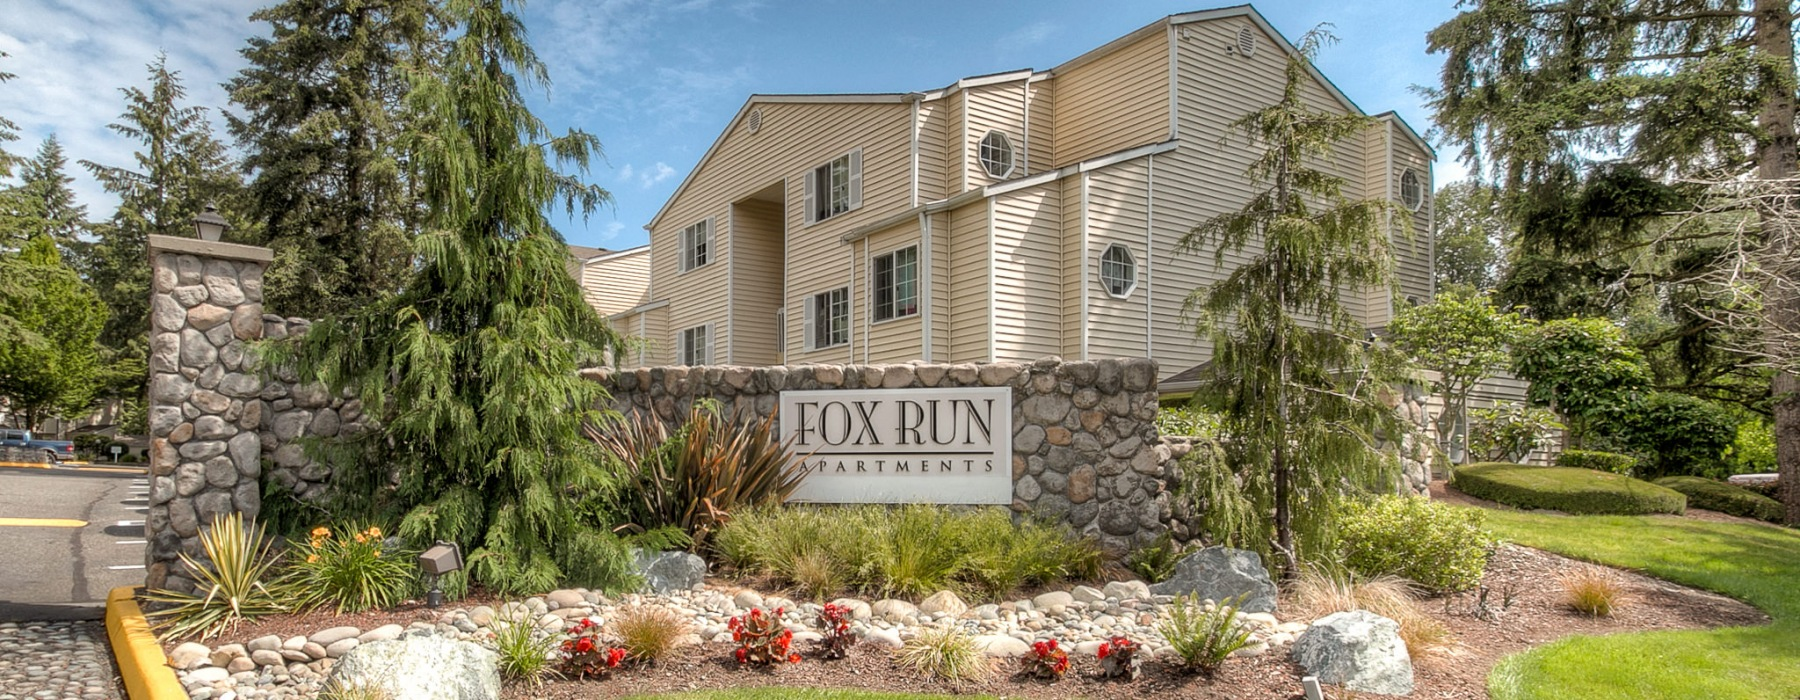 Fox Run entrance sign with nice lanscaping